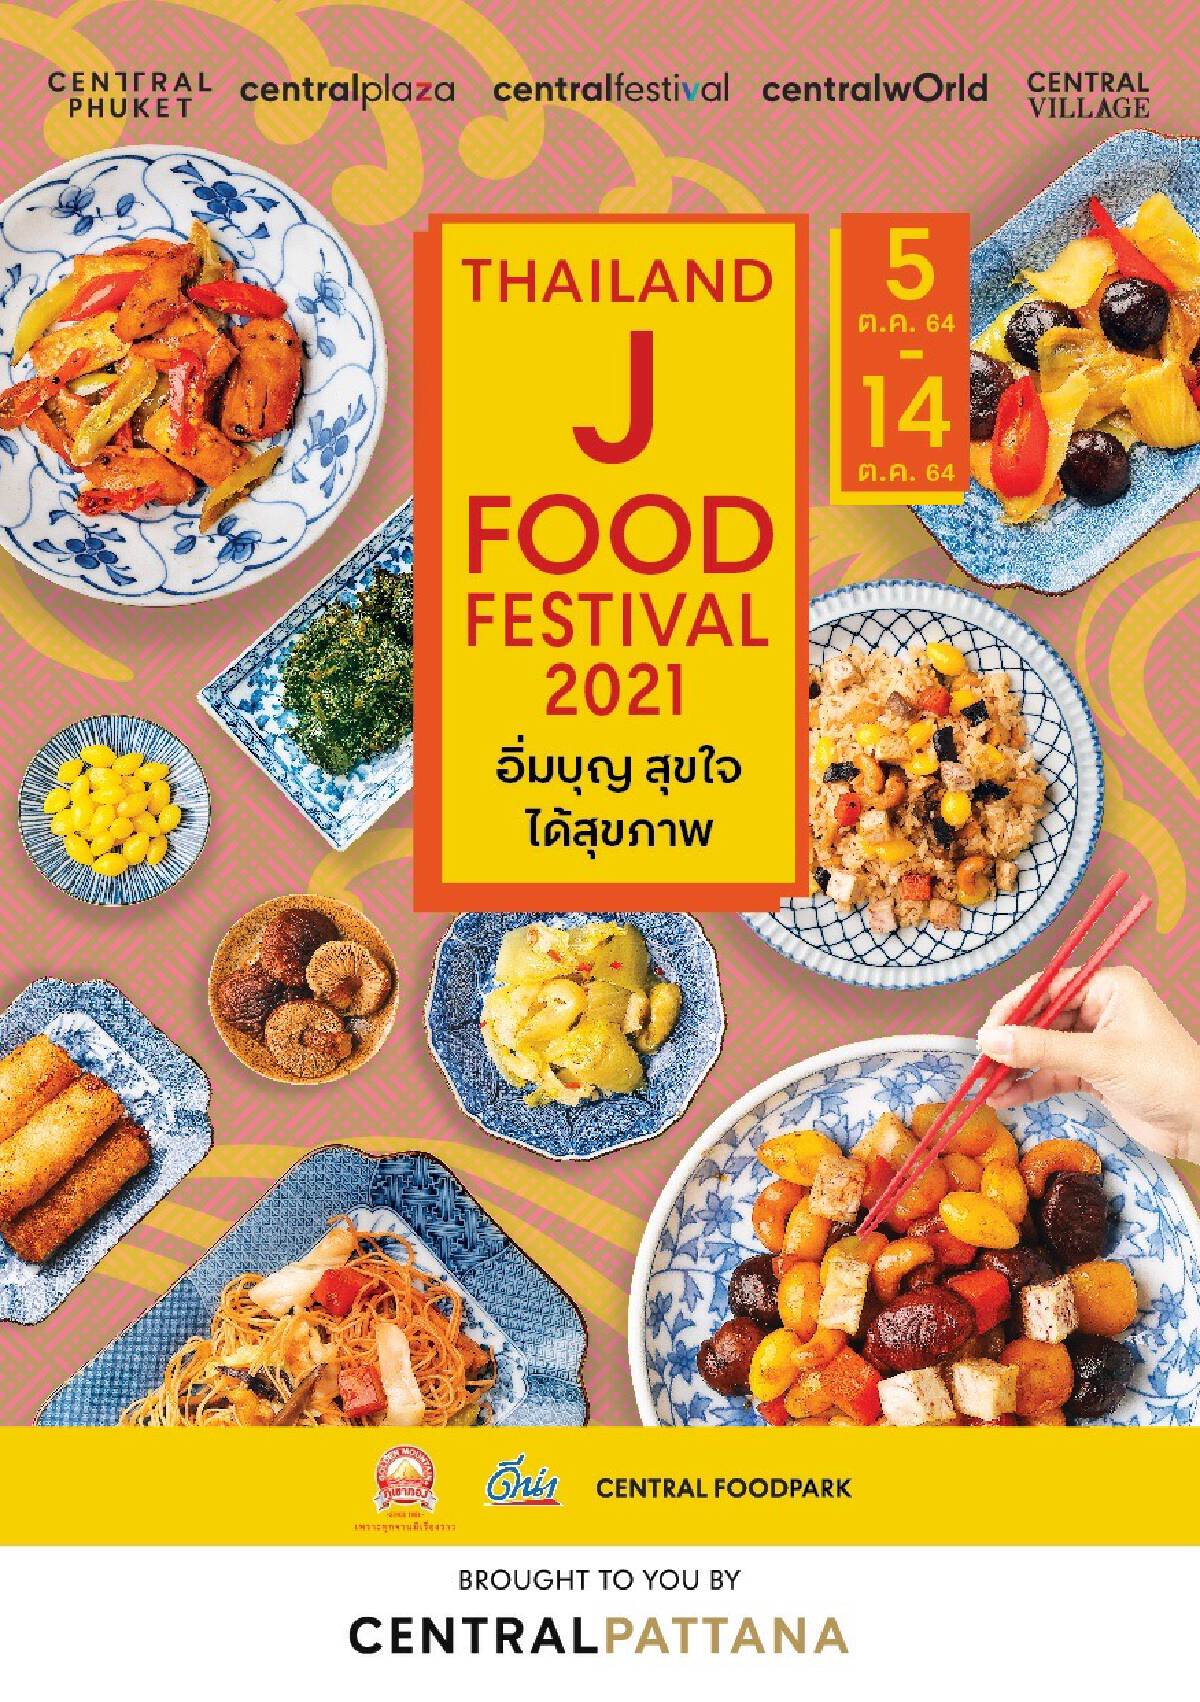 Unveiling the ultimate 'Thailand J Food Festival' at Central shopping centers